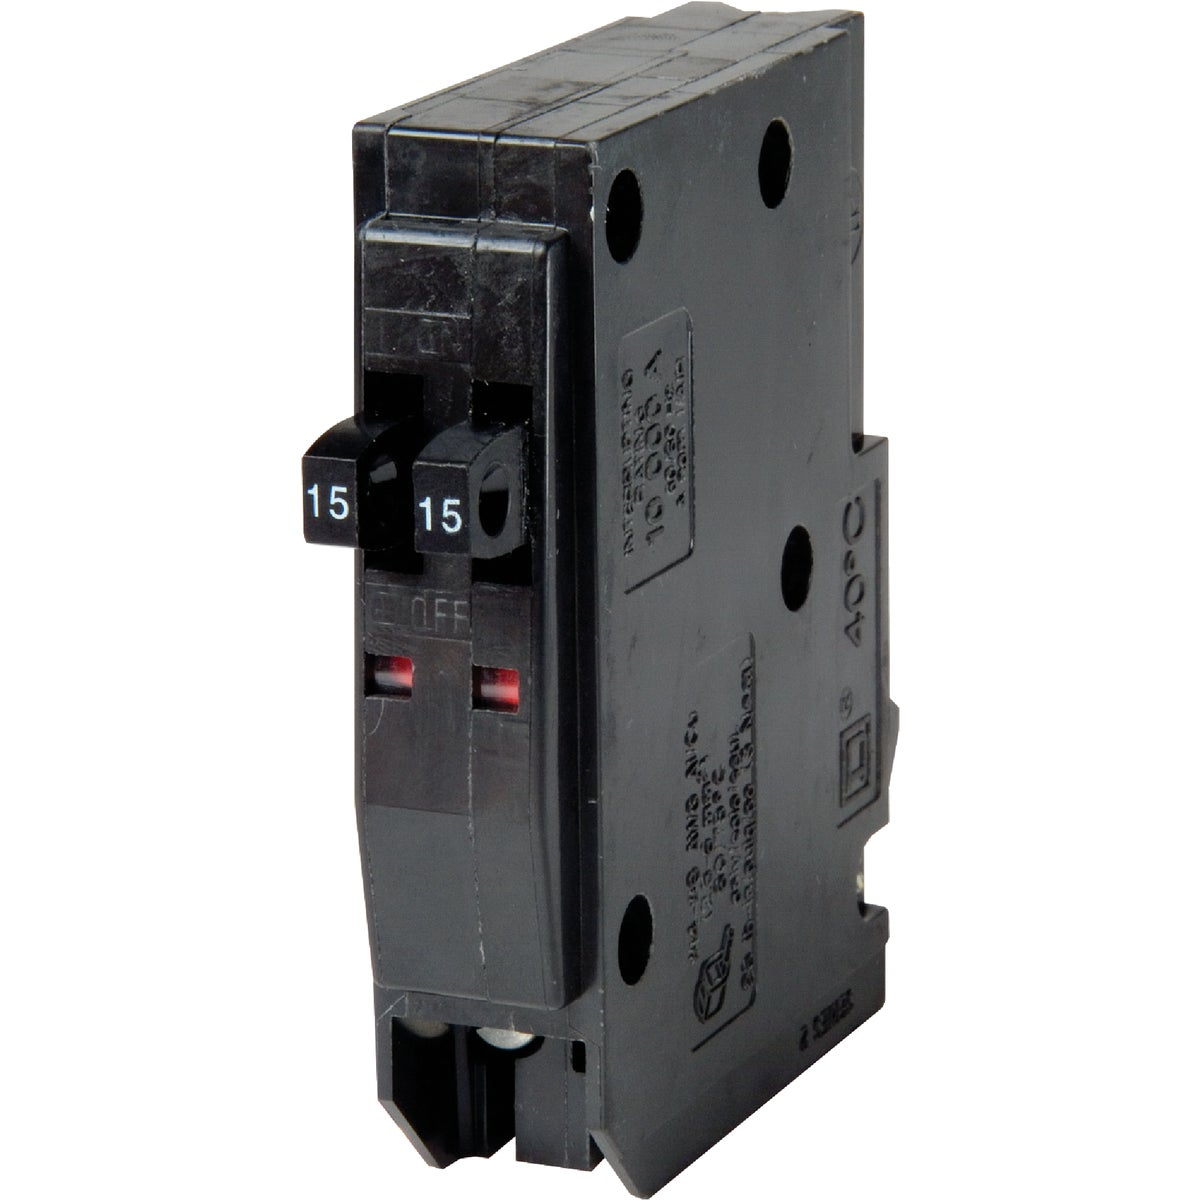 15A/15A TANDEM BREAKER - QOT1515CP by Square D Co